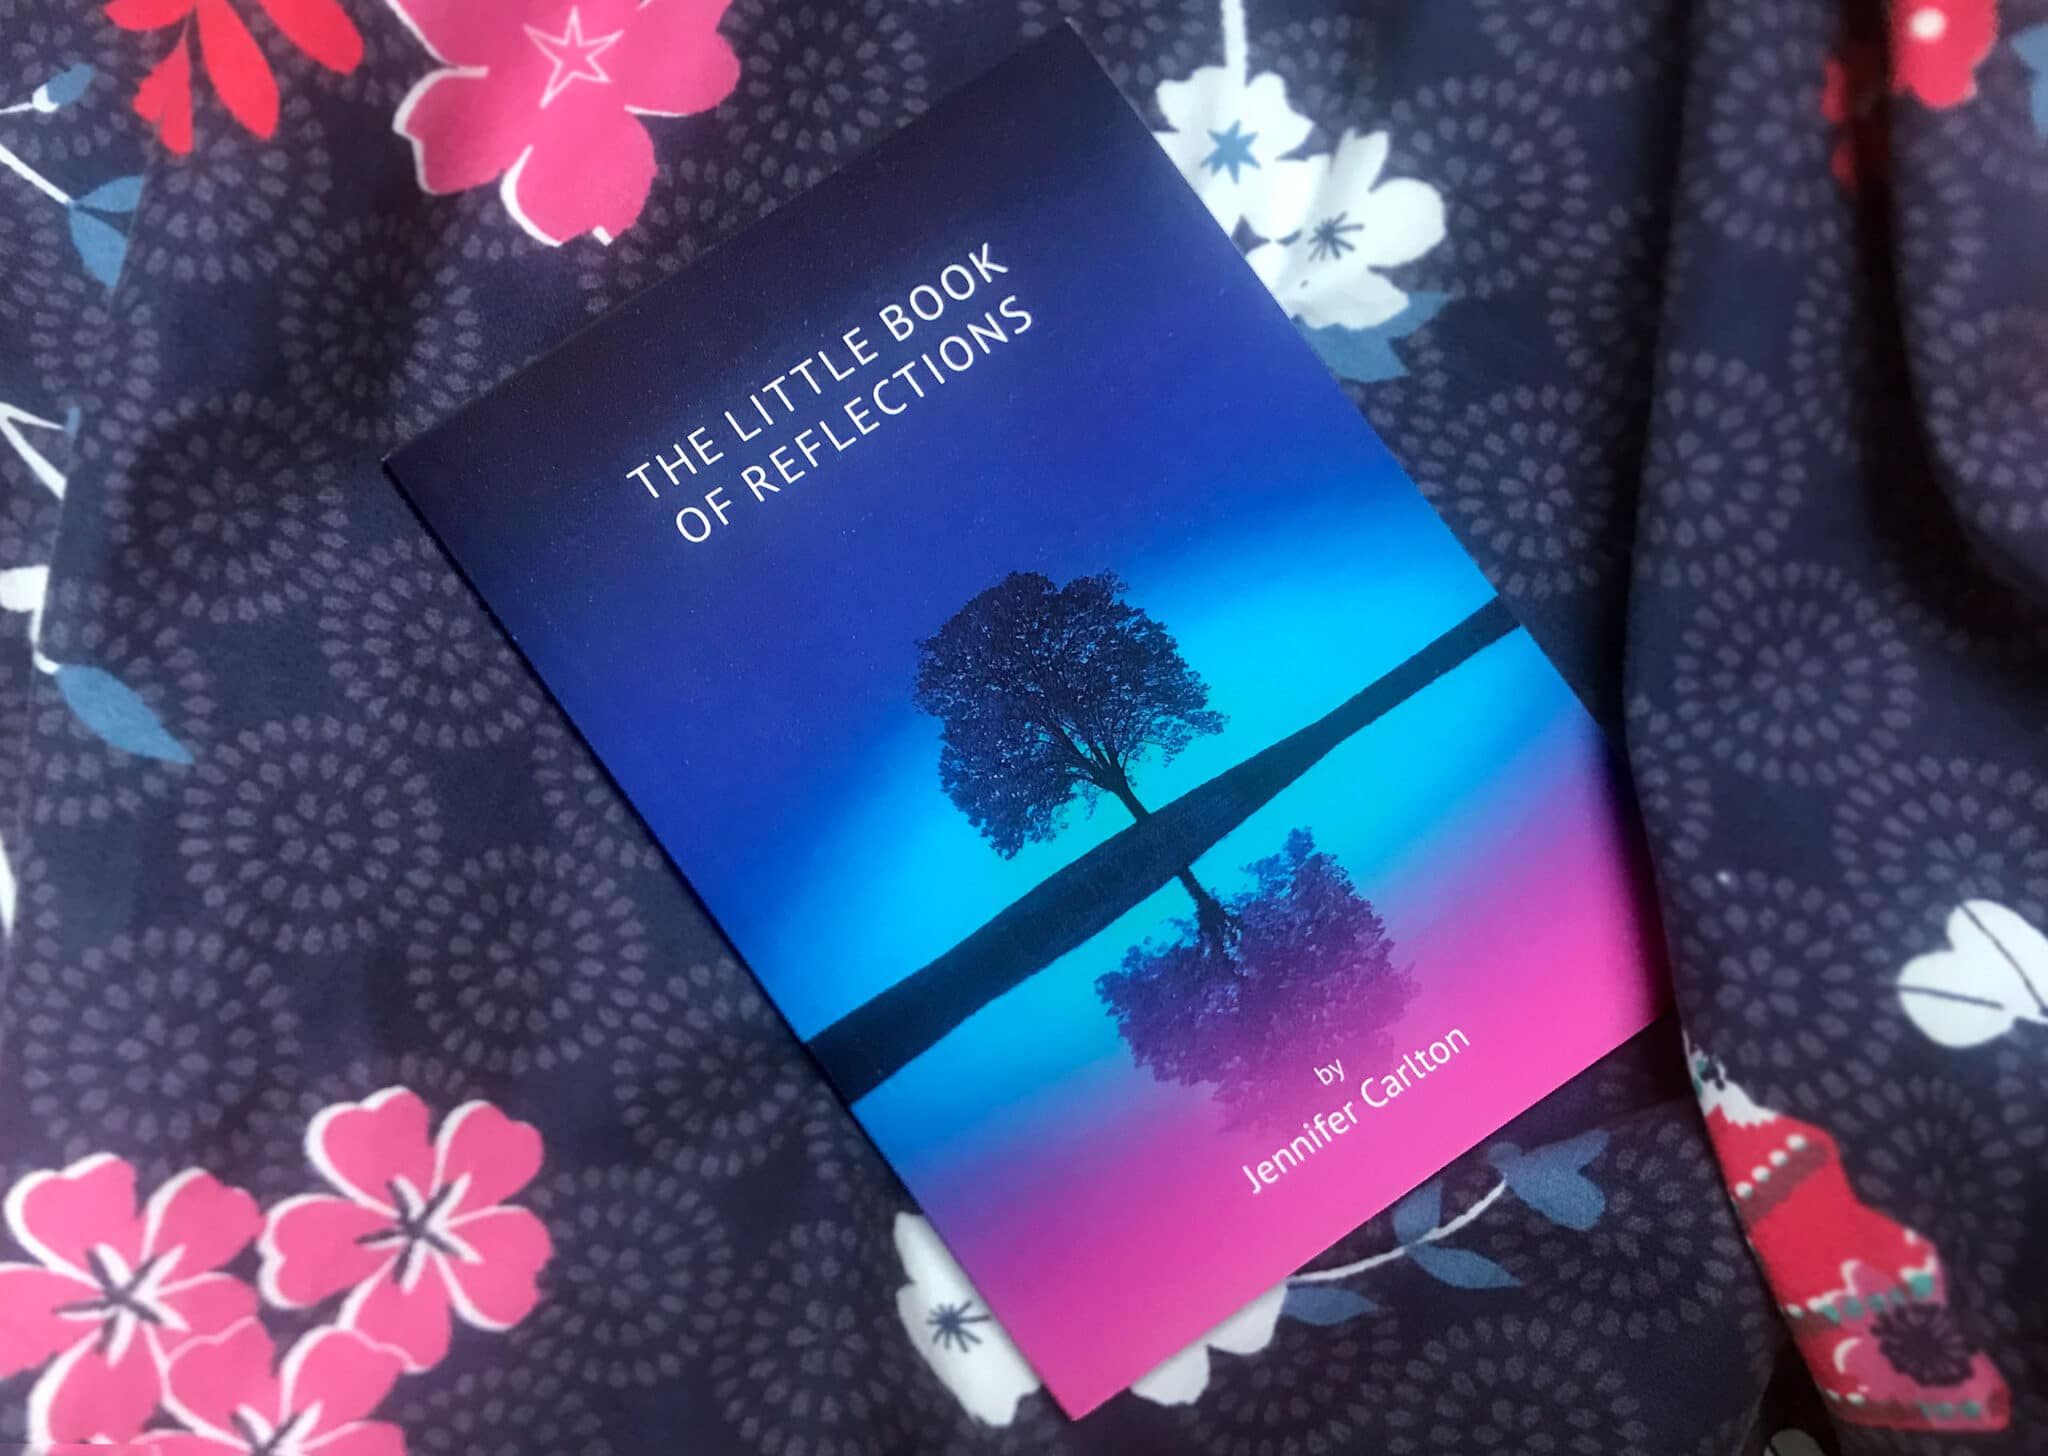 A6 Paperback Book Design And Printing